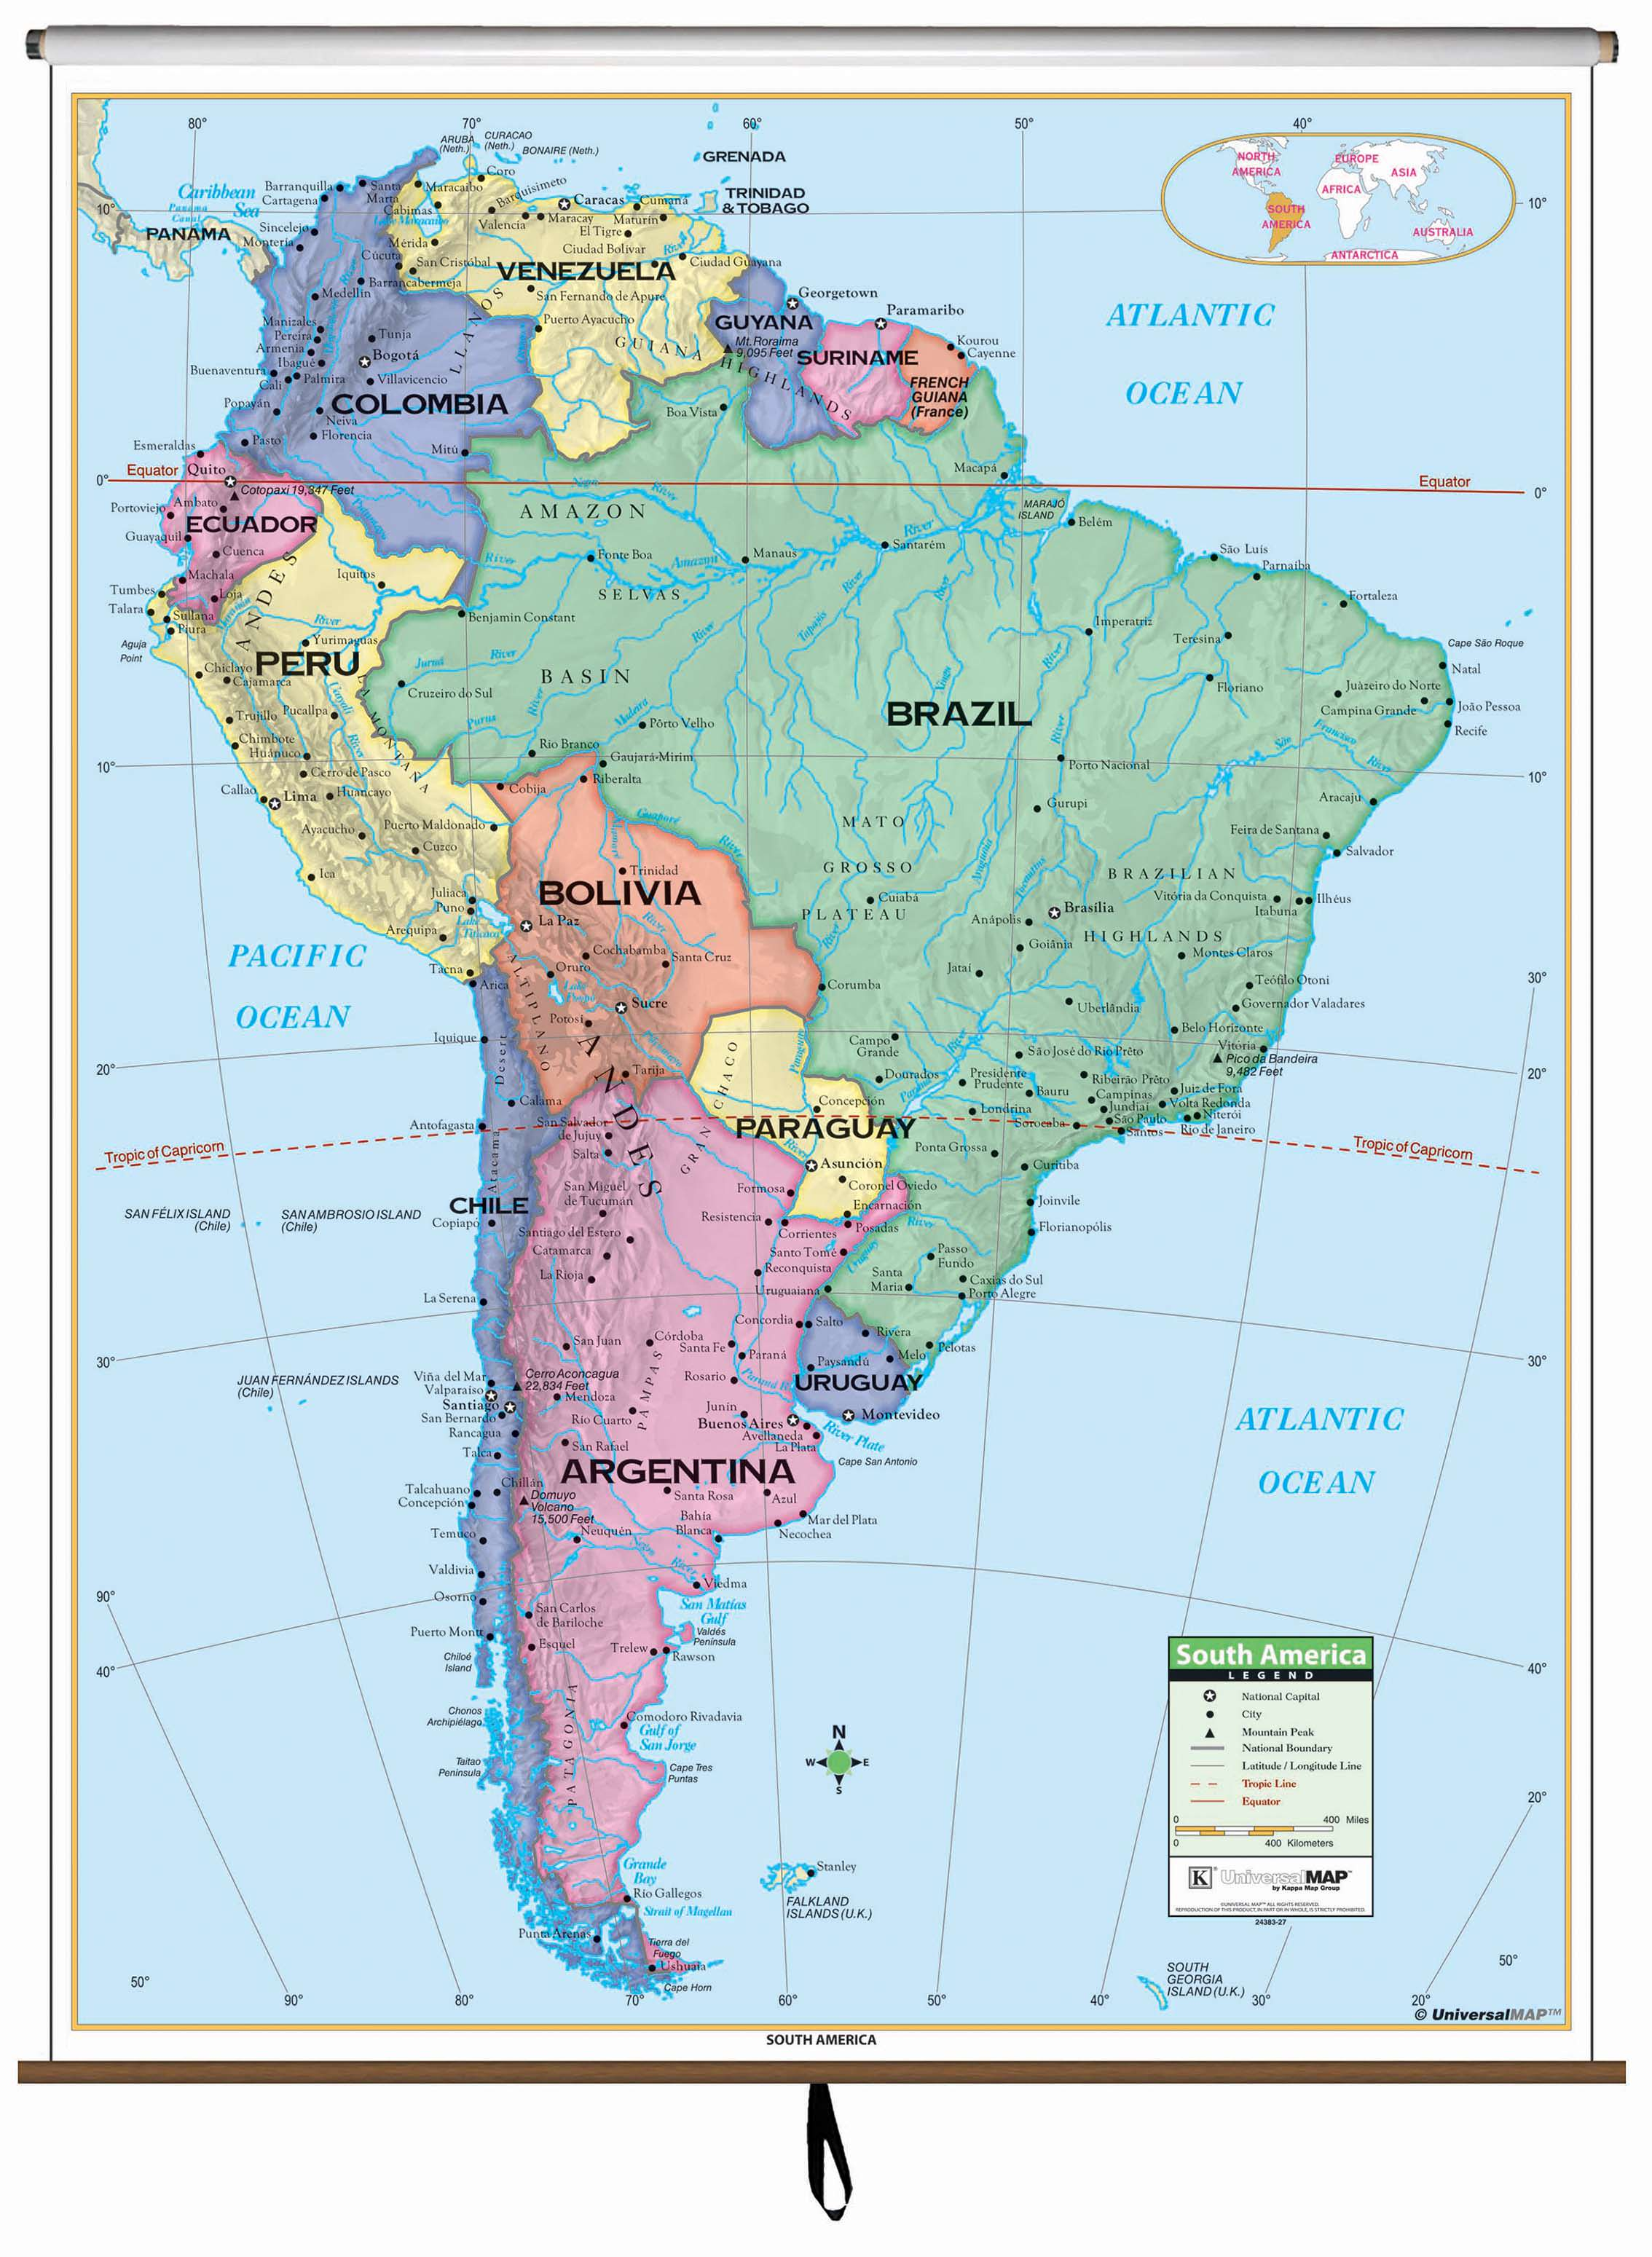 south america map with longitude and latitude lines South America Primary Classroom Wall Map Kappa Map Group